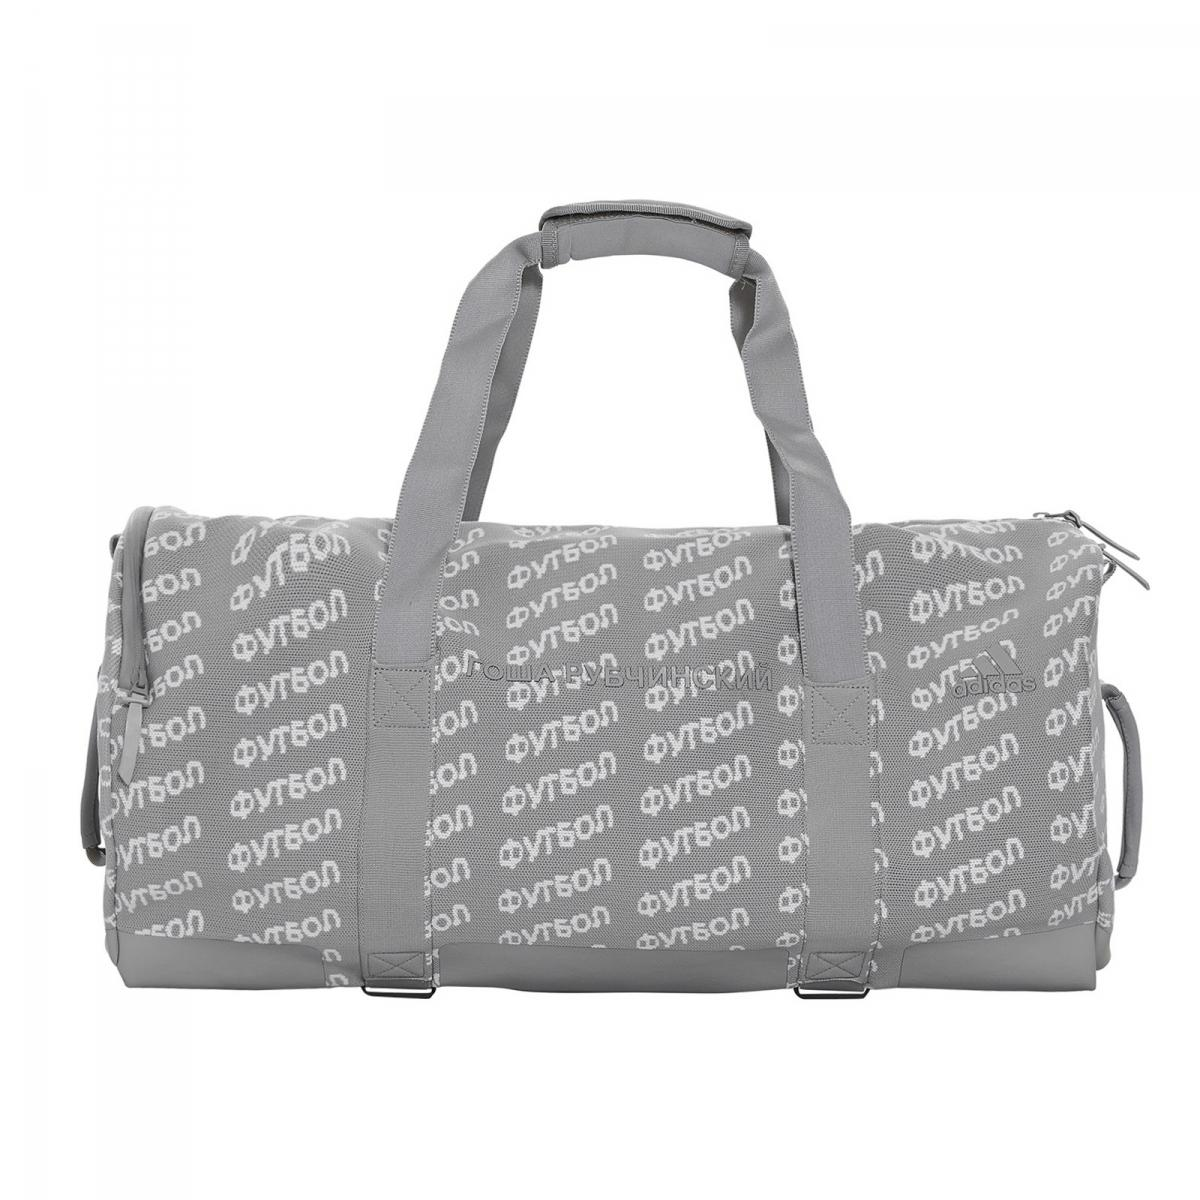 6ca0798d94db Lyst - Gosha Rubchinskiy Adidas Team Bag in Gray for Men